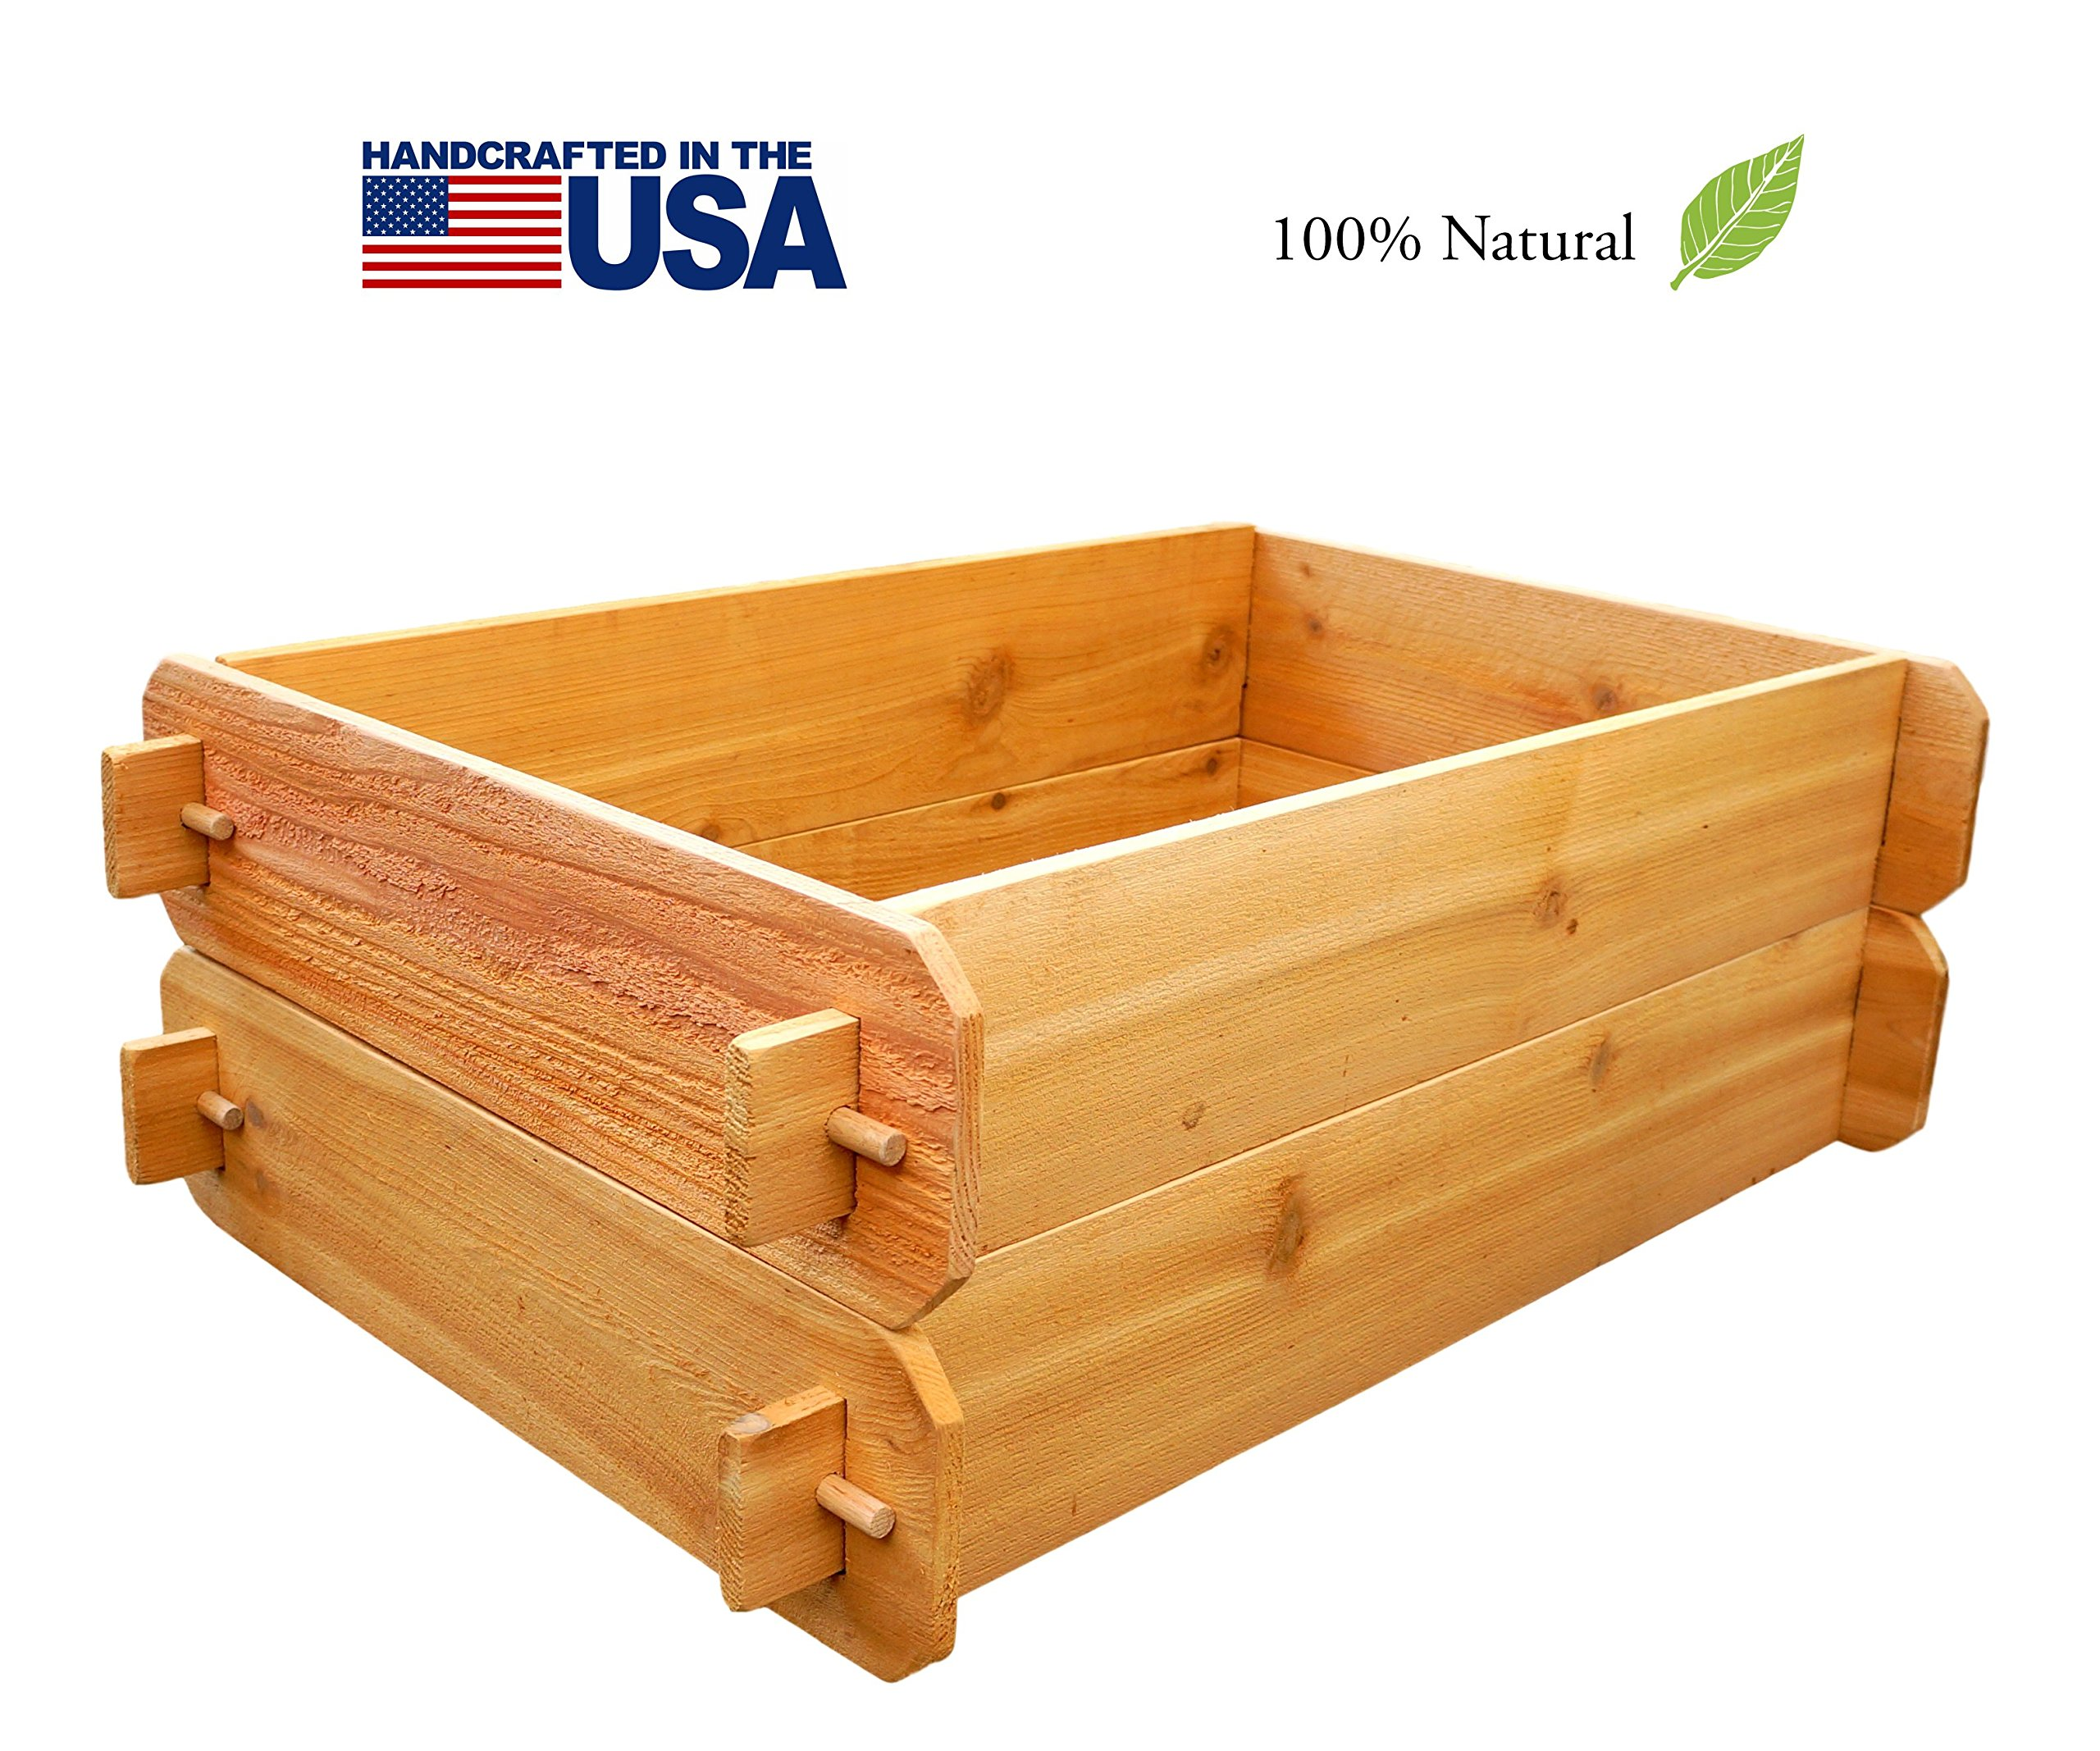 Timberlane Gardens Raised Bed Kit Double Deep (Two 2x3) Western Red Cedar with Mortise and Tenon Joinery 2 Feet x 3 Feet